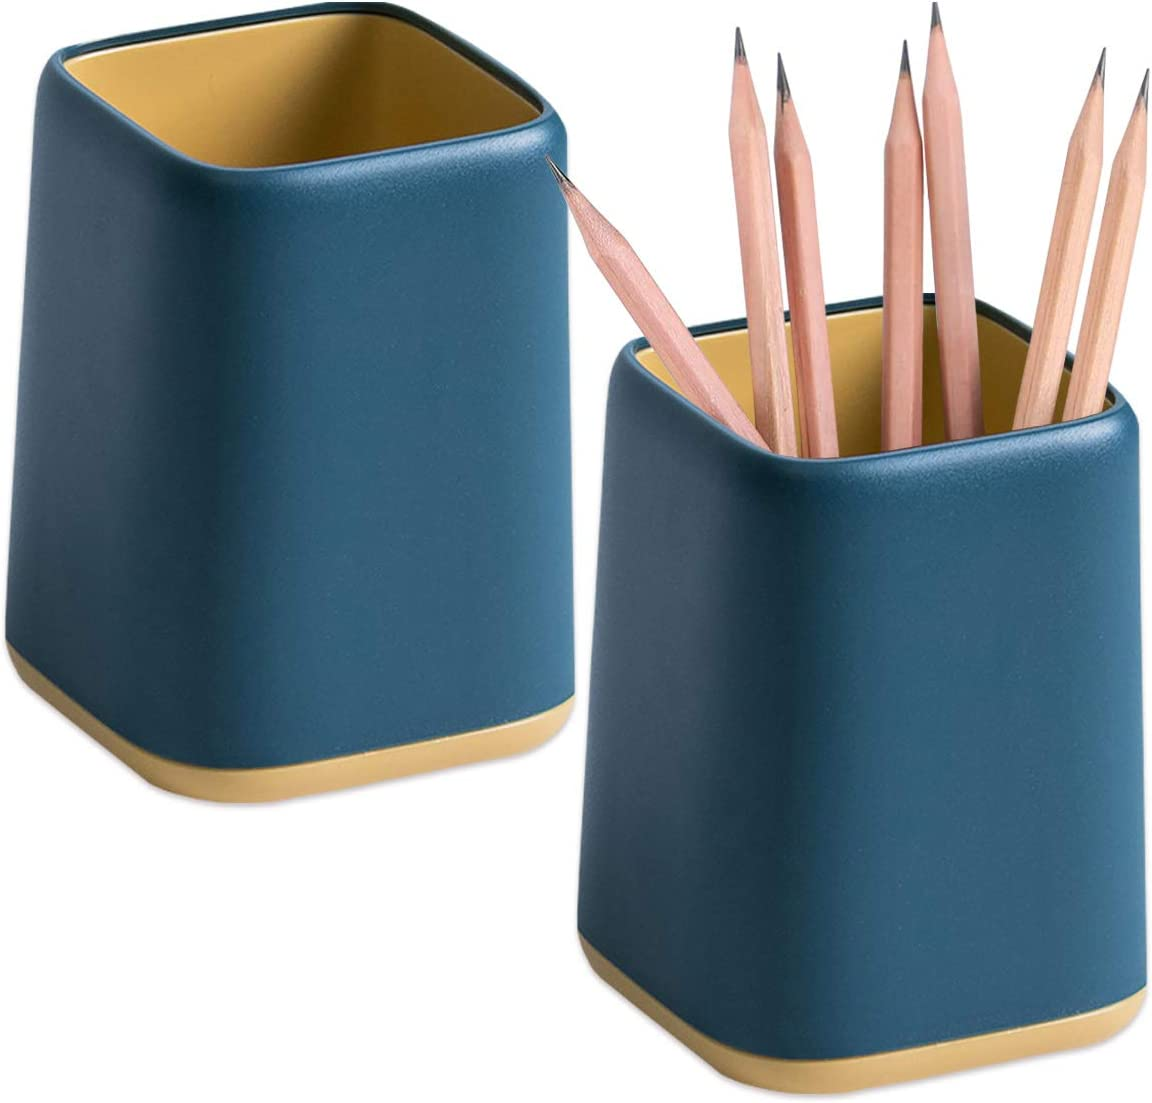 2 Pack Desk Pen Holder,Two-Tone Cute Pen Cup Makeup Brush Holder,Durable Desktop Organizer Pencil Holder for Desk,Vanity Table,Office Supplies (Blue)